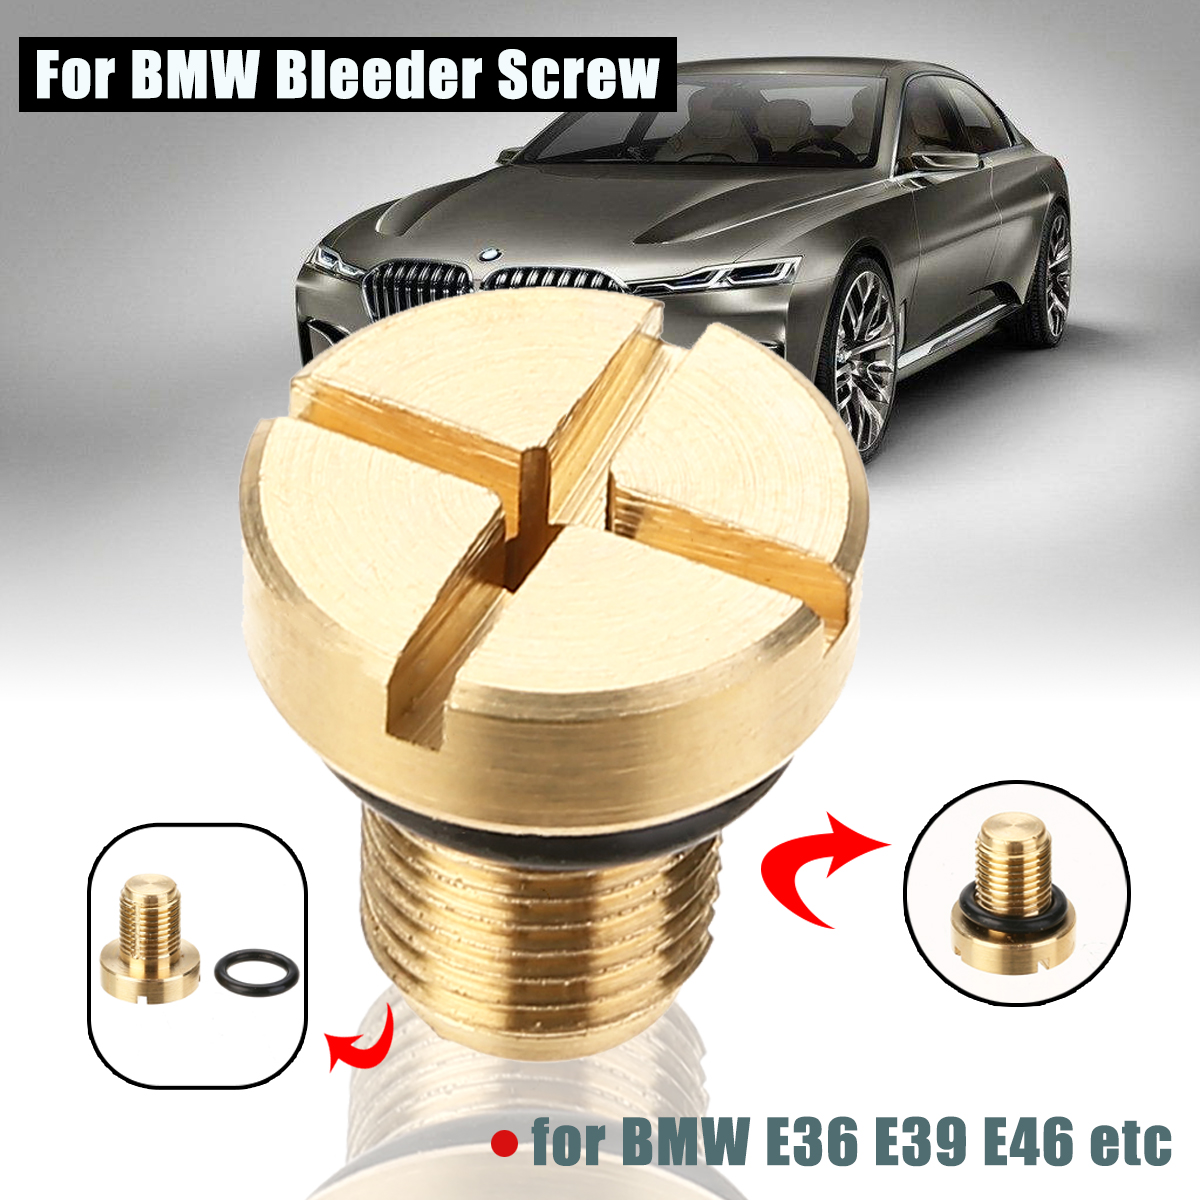 Image 2 - 1pc Coolant Expansion Tank Bleeder Screw Brass For BMW E36 E39 E46 etc Car Oil Radiator Pipe /Water Tank Return Pipe 17111712788